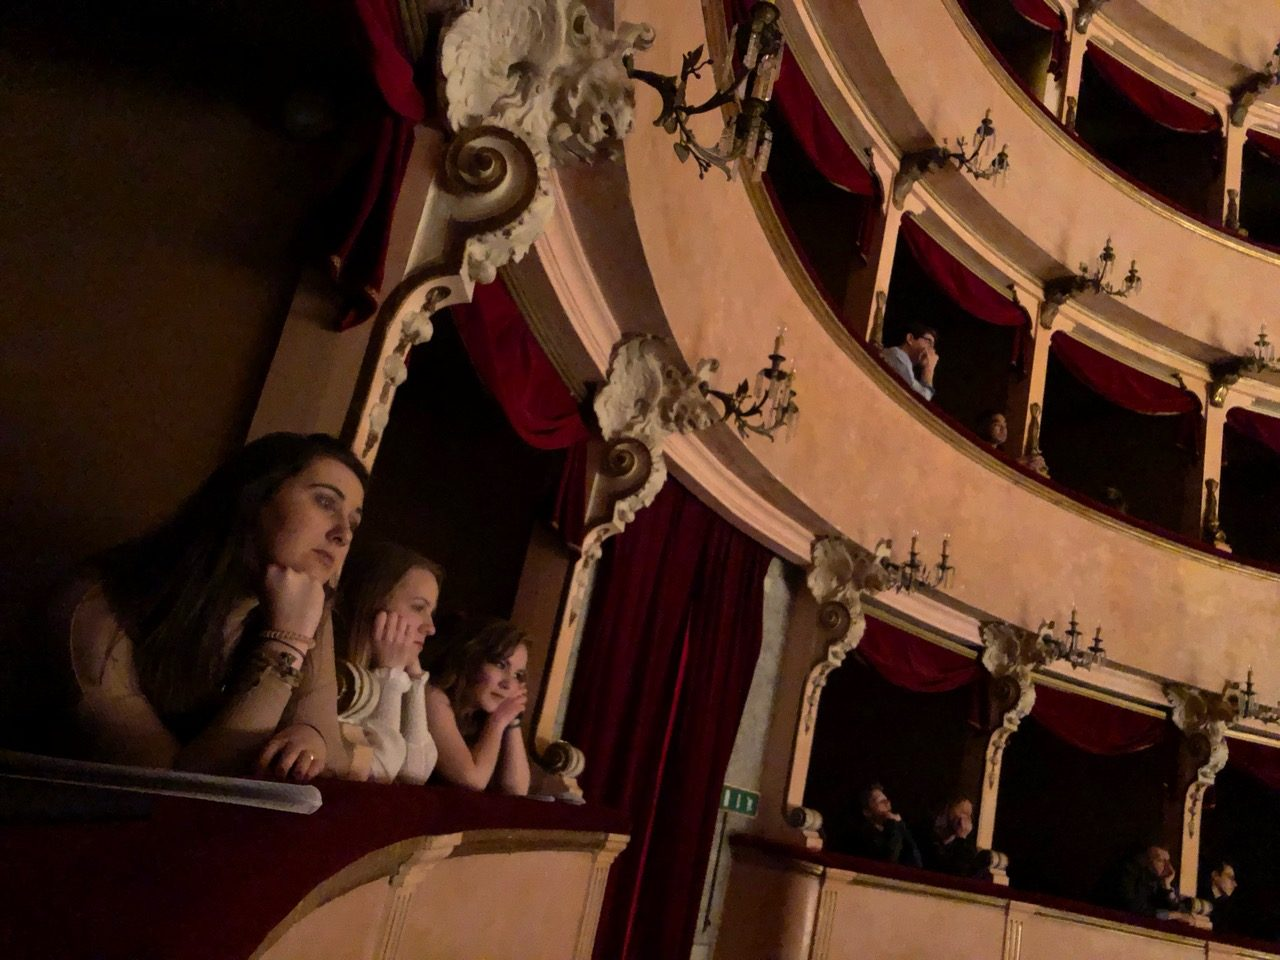 Students sit in the balcony of a theater.